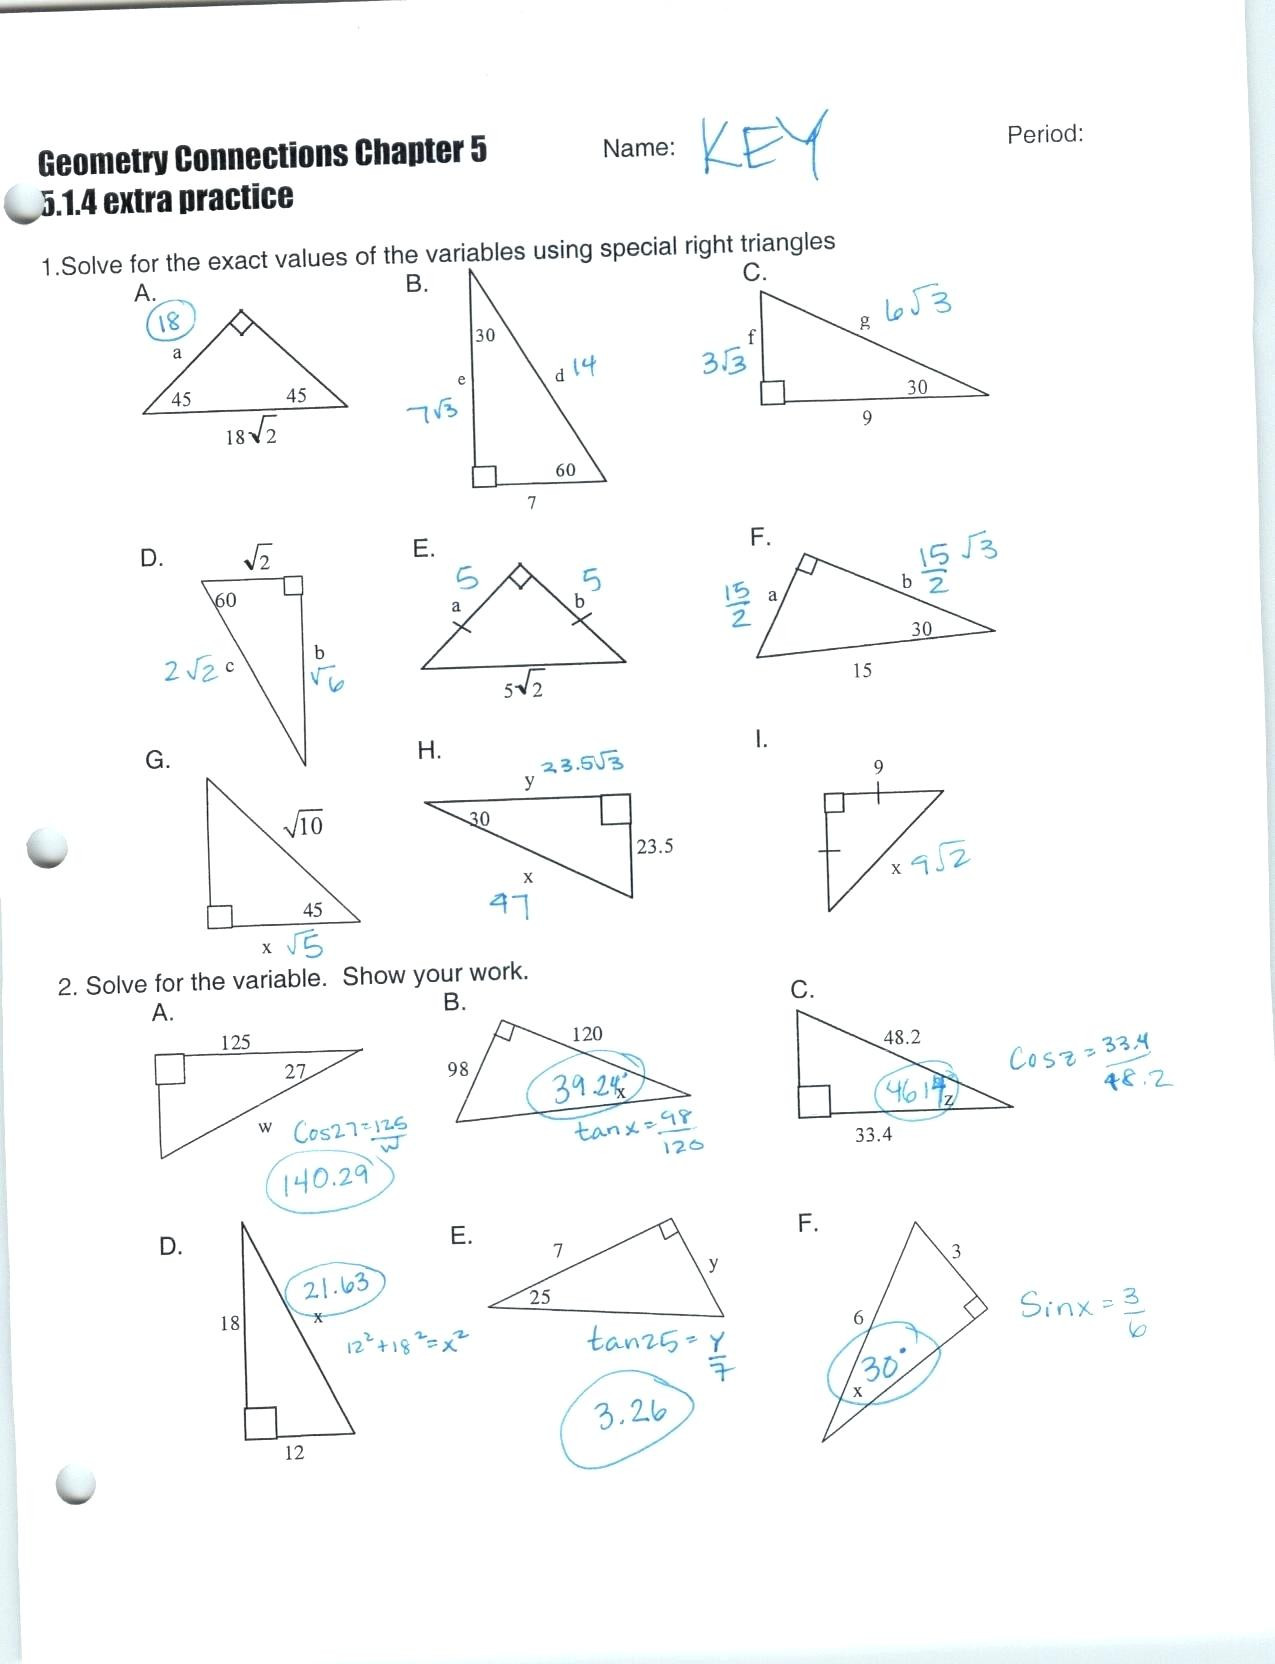 Math Aids Compound Shapes Inverse Trig Functions Worksheet with Answers Nidecmege